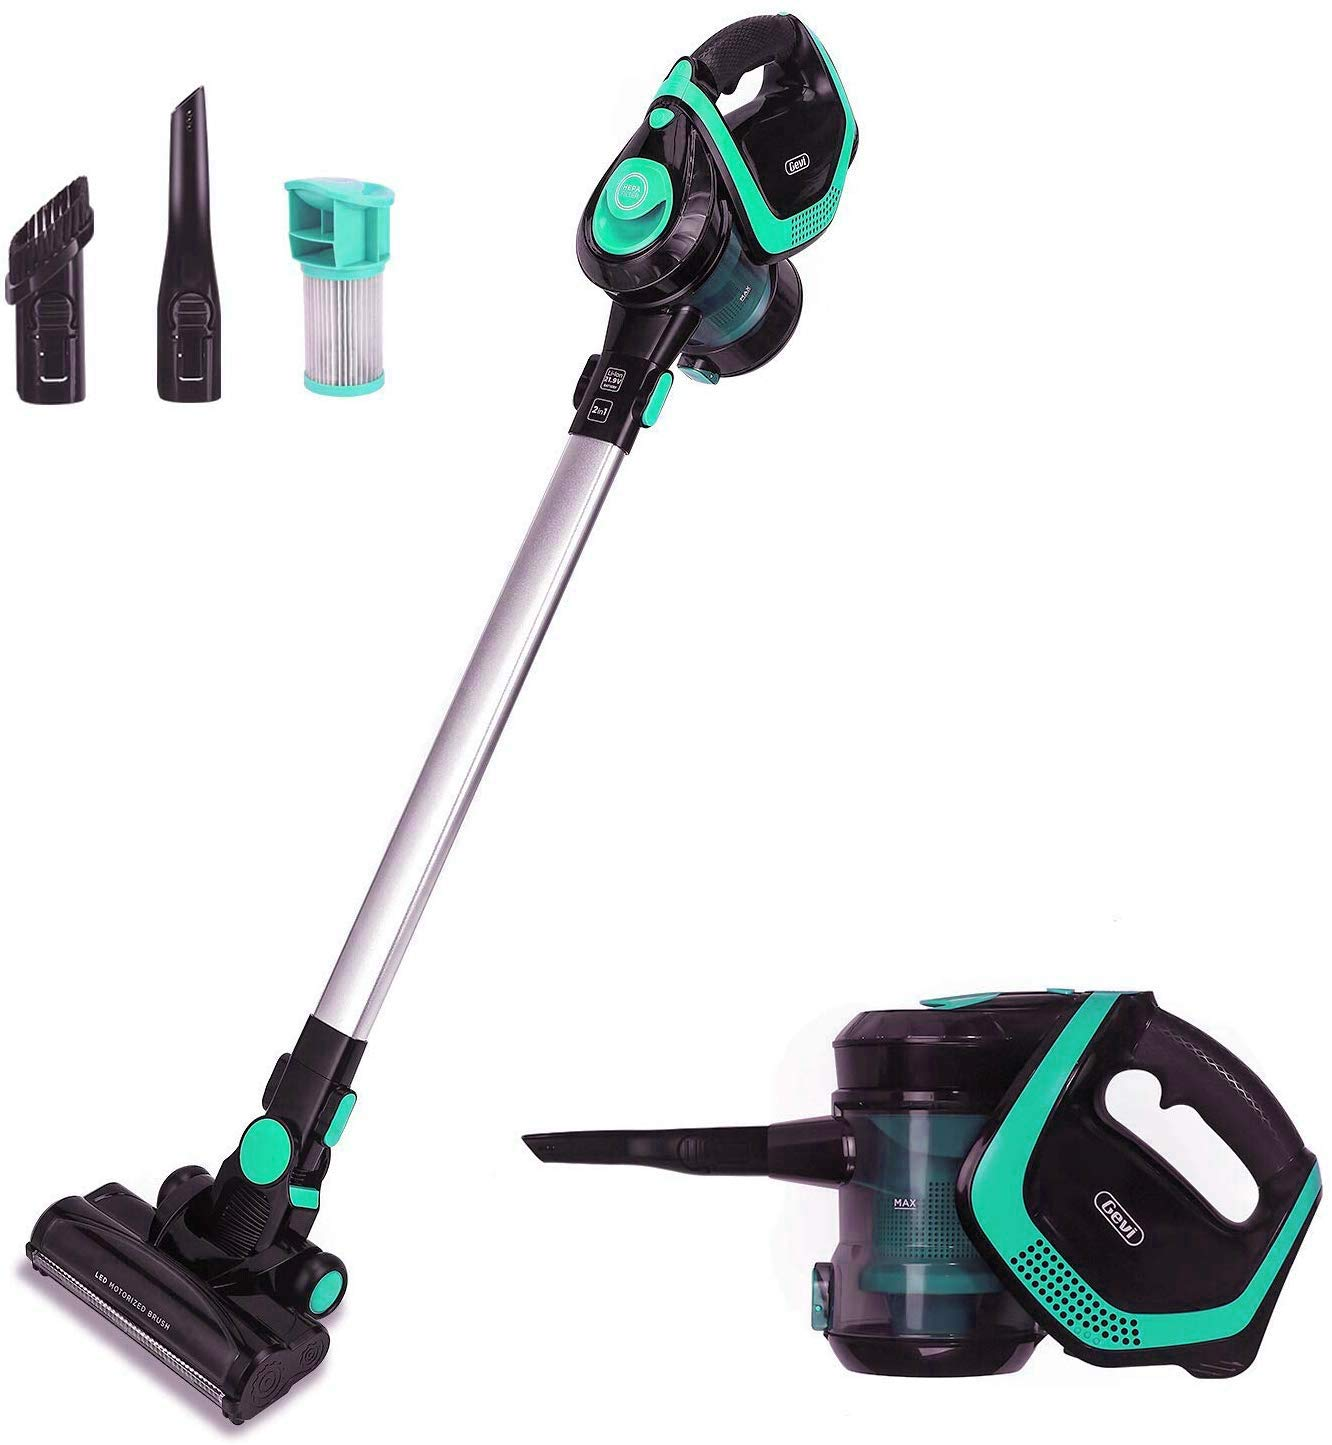 FULLWATT 800W Electric Drywall Sander 5 Variable Speed with Auto Dust Collection System and 6 Sand Pads Drywall Vacuum